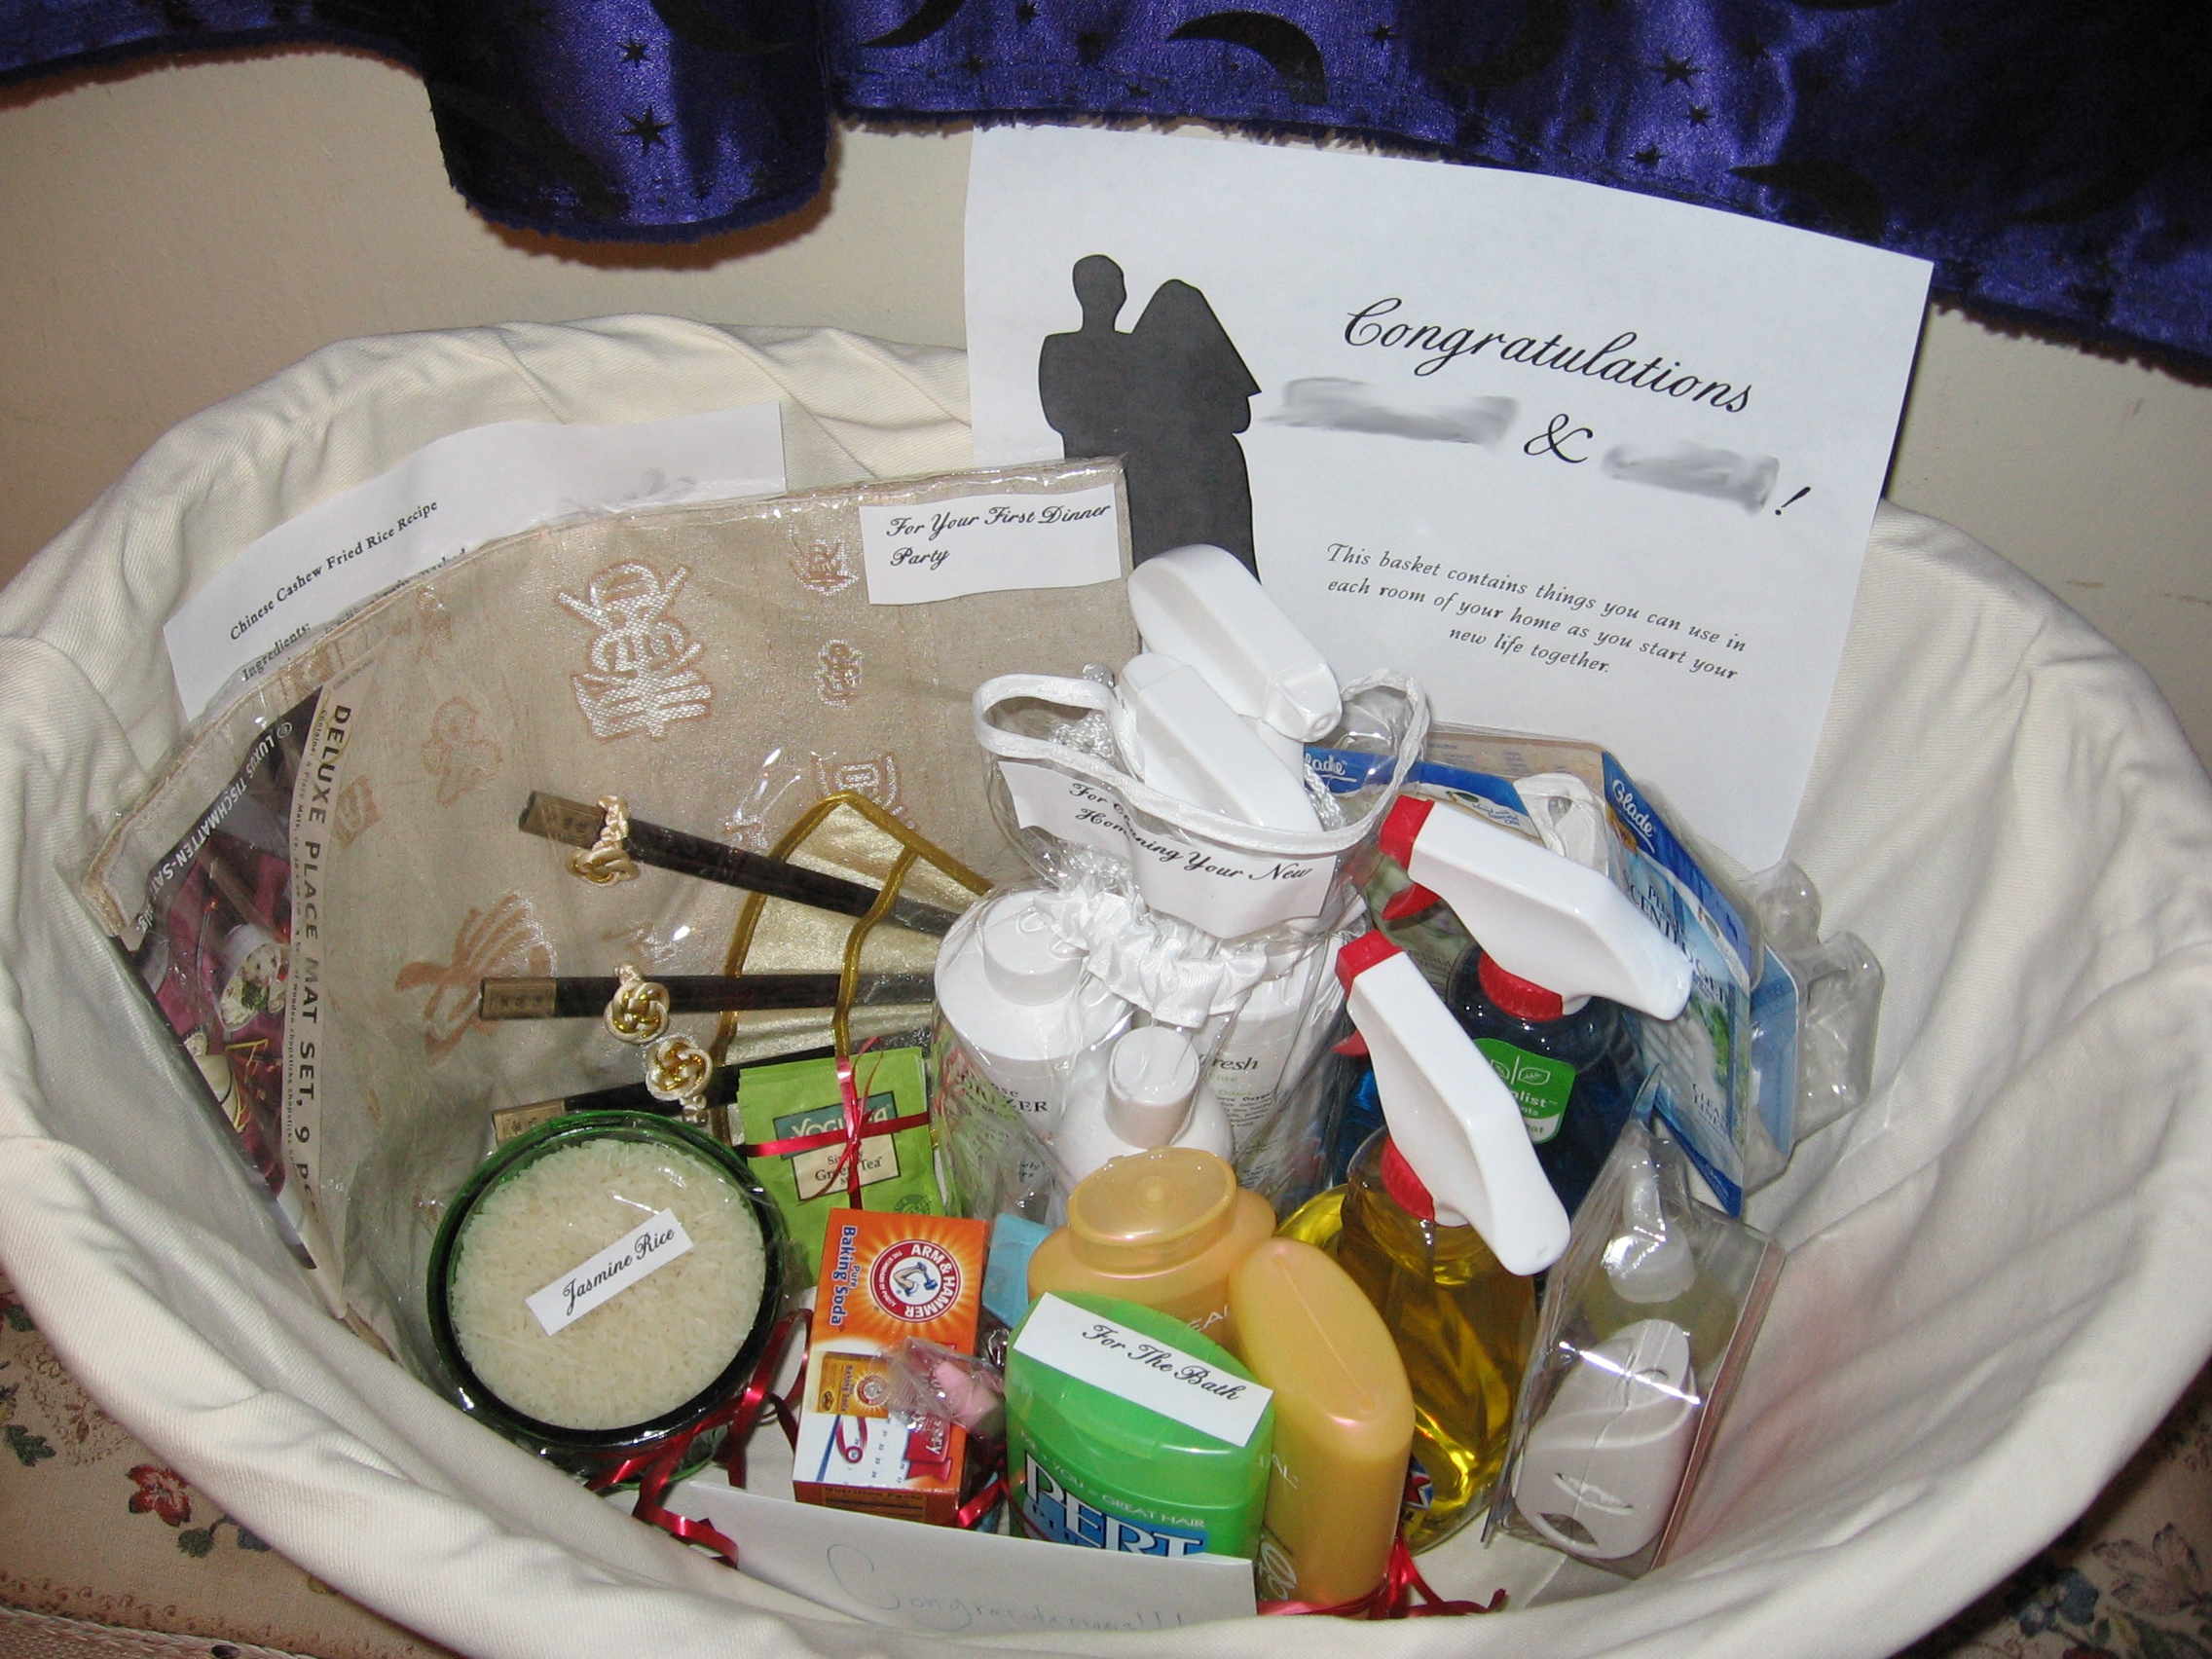 How To Make Wedding Gift Basket : The happy couple s names are blurred out for privacy! ??